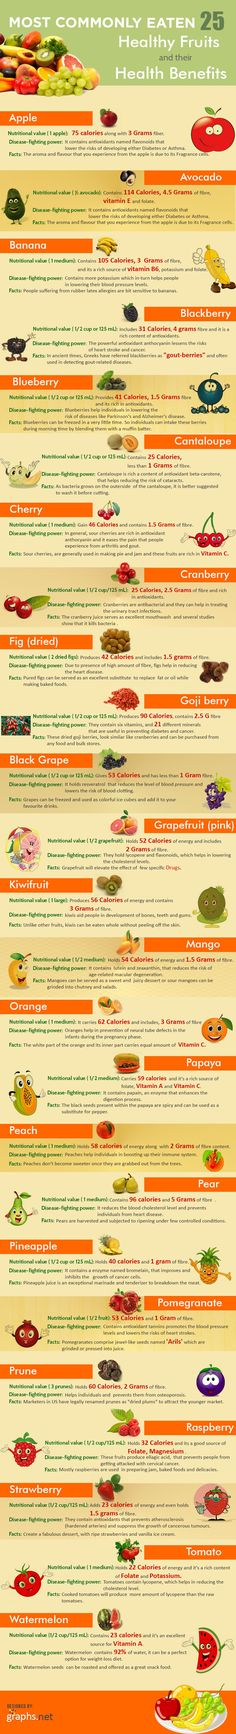 25 Healthiest Fruits Infographic